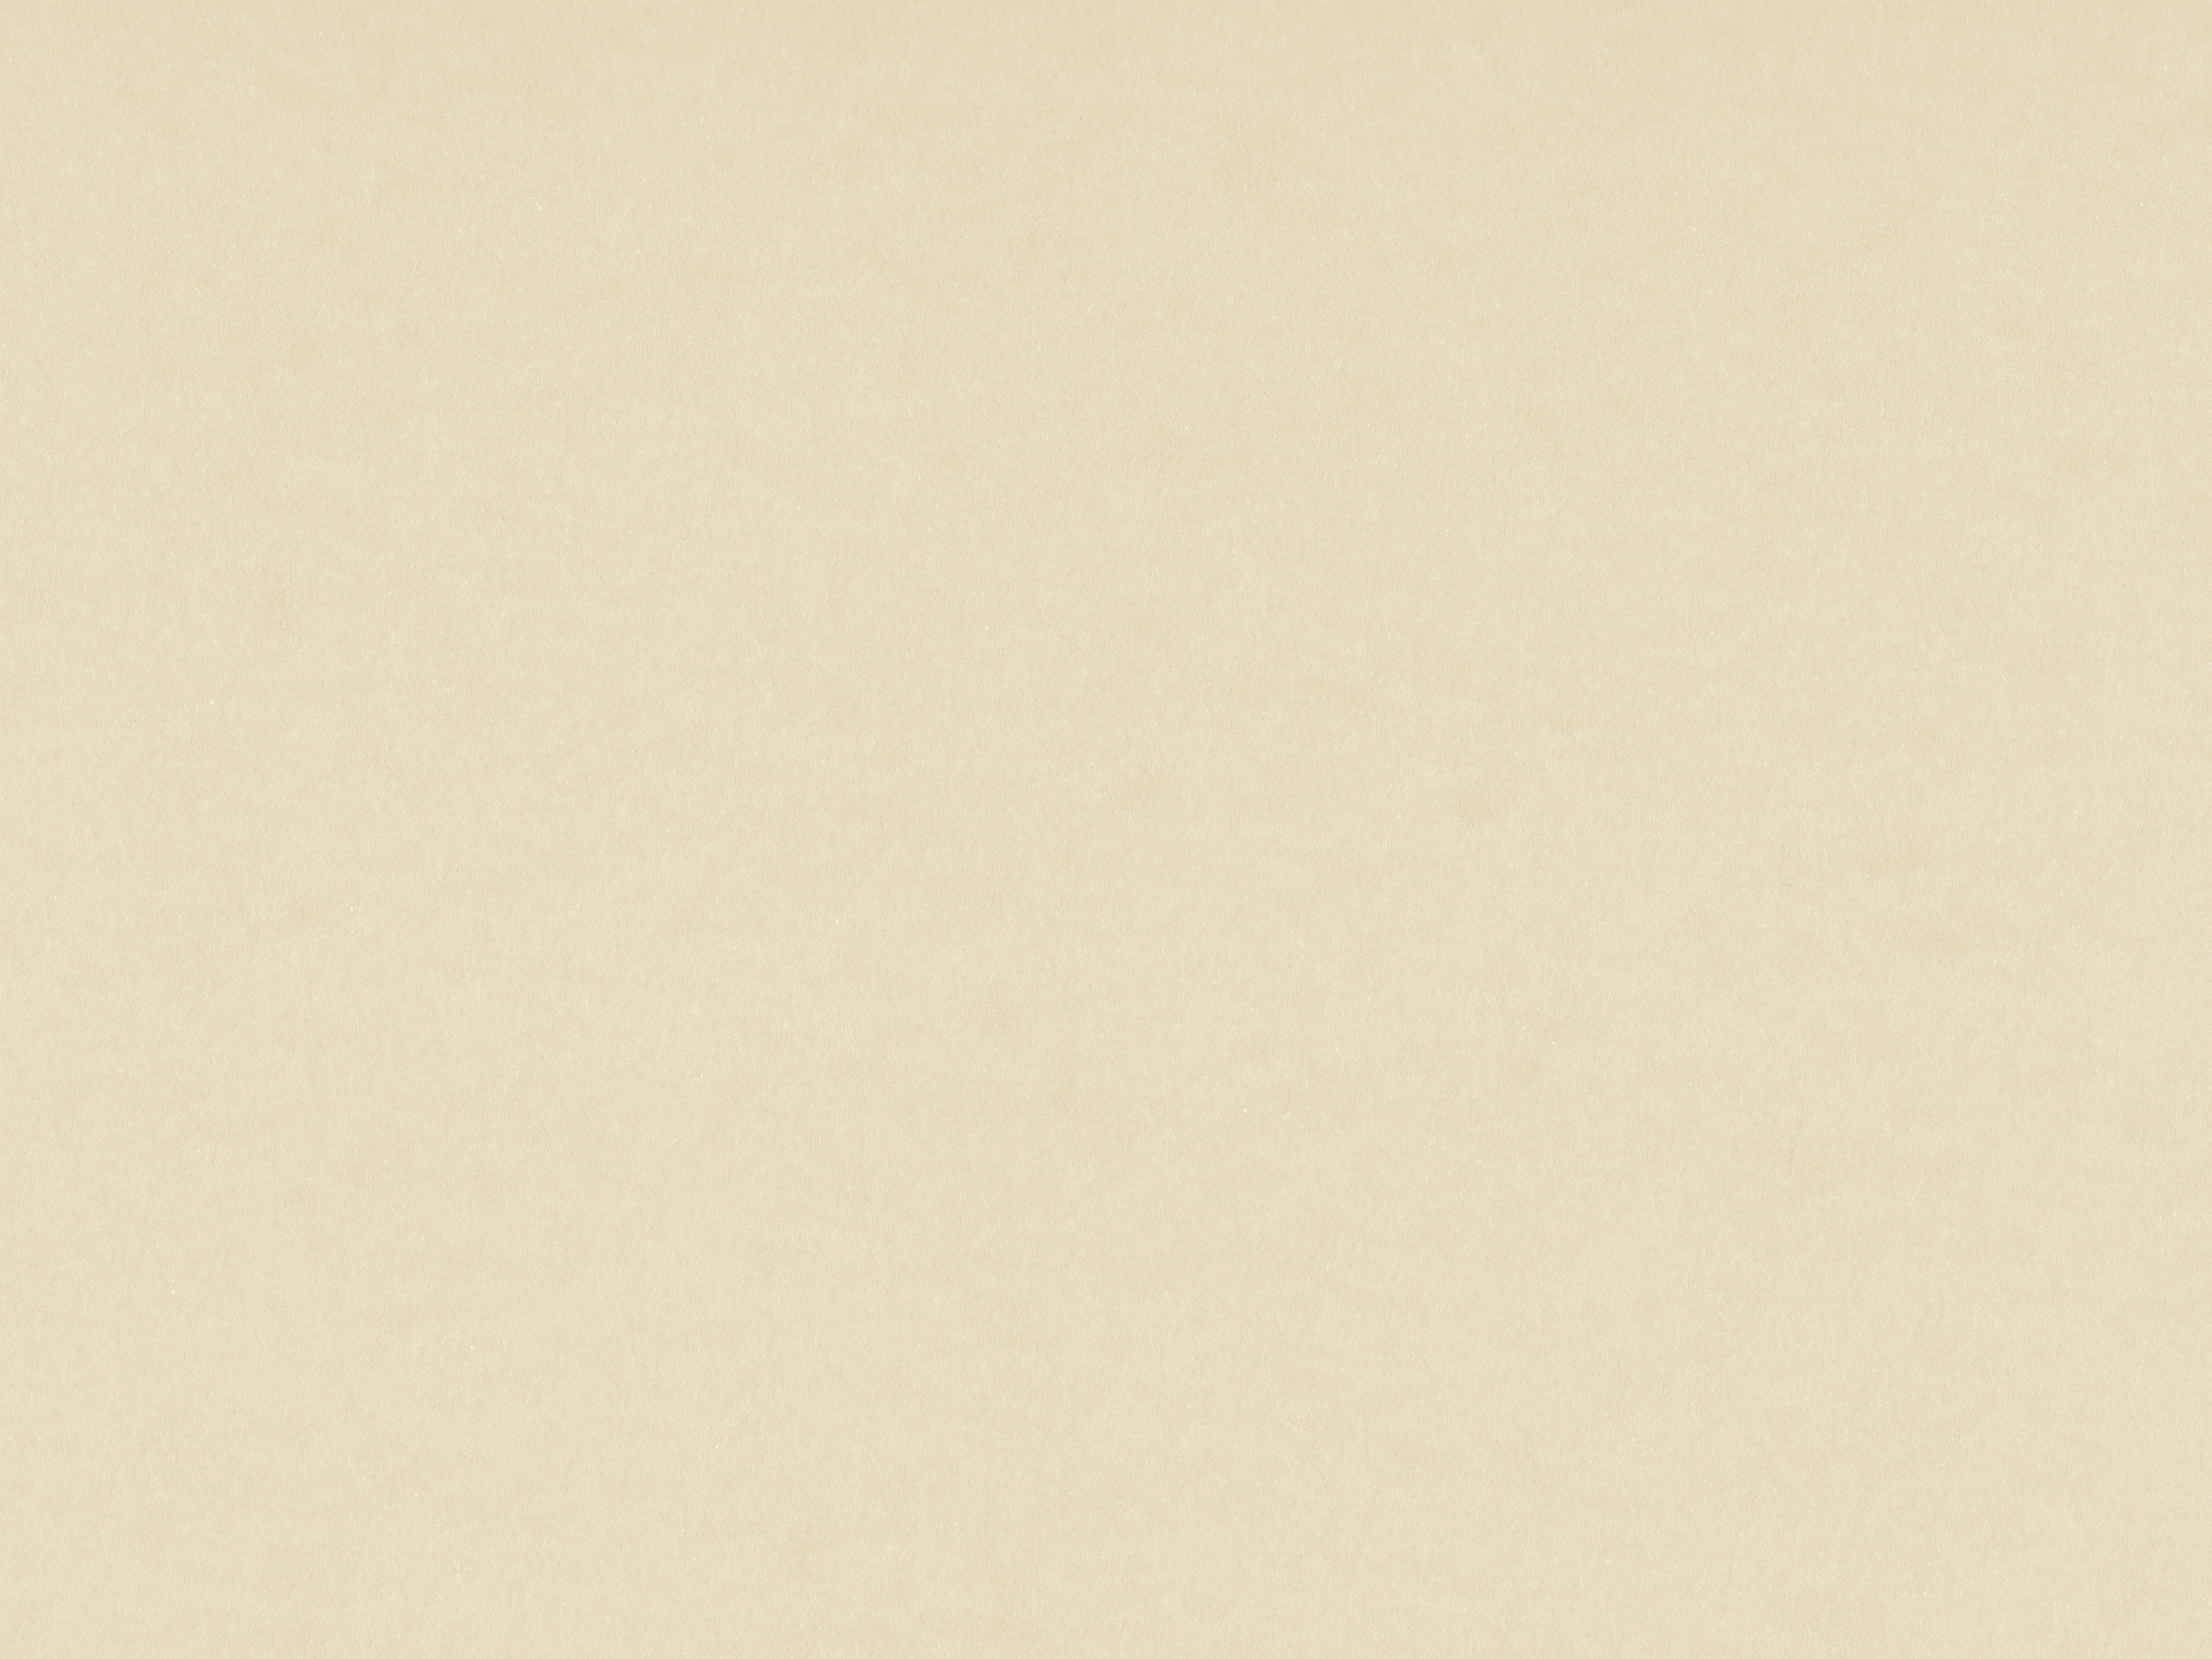 Cream Colored Card Stock Paper Texture Picture  Free